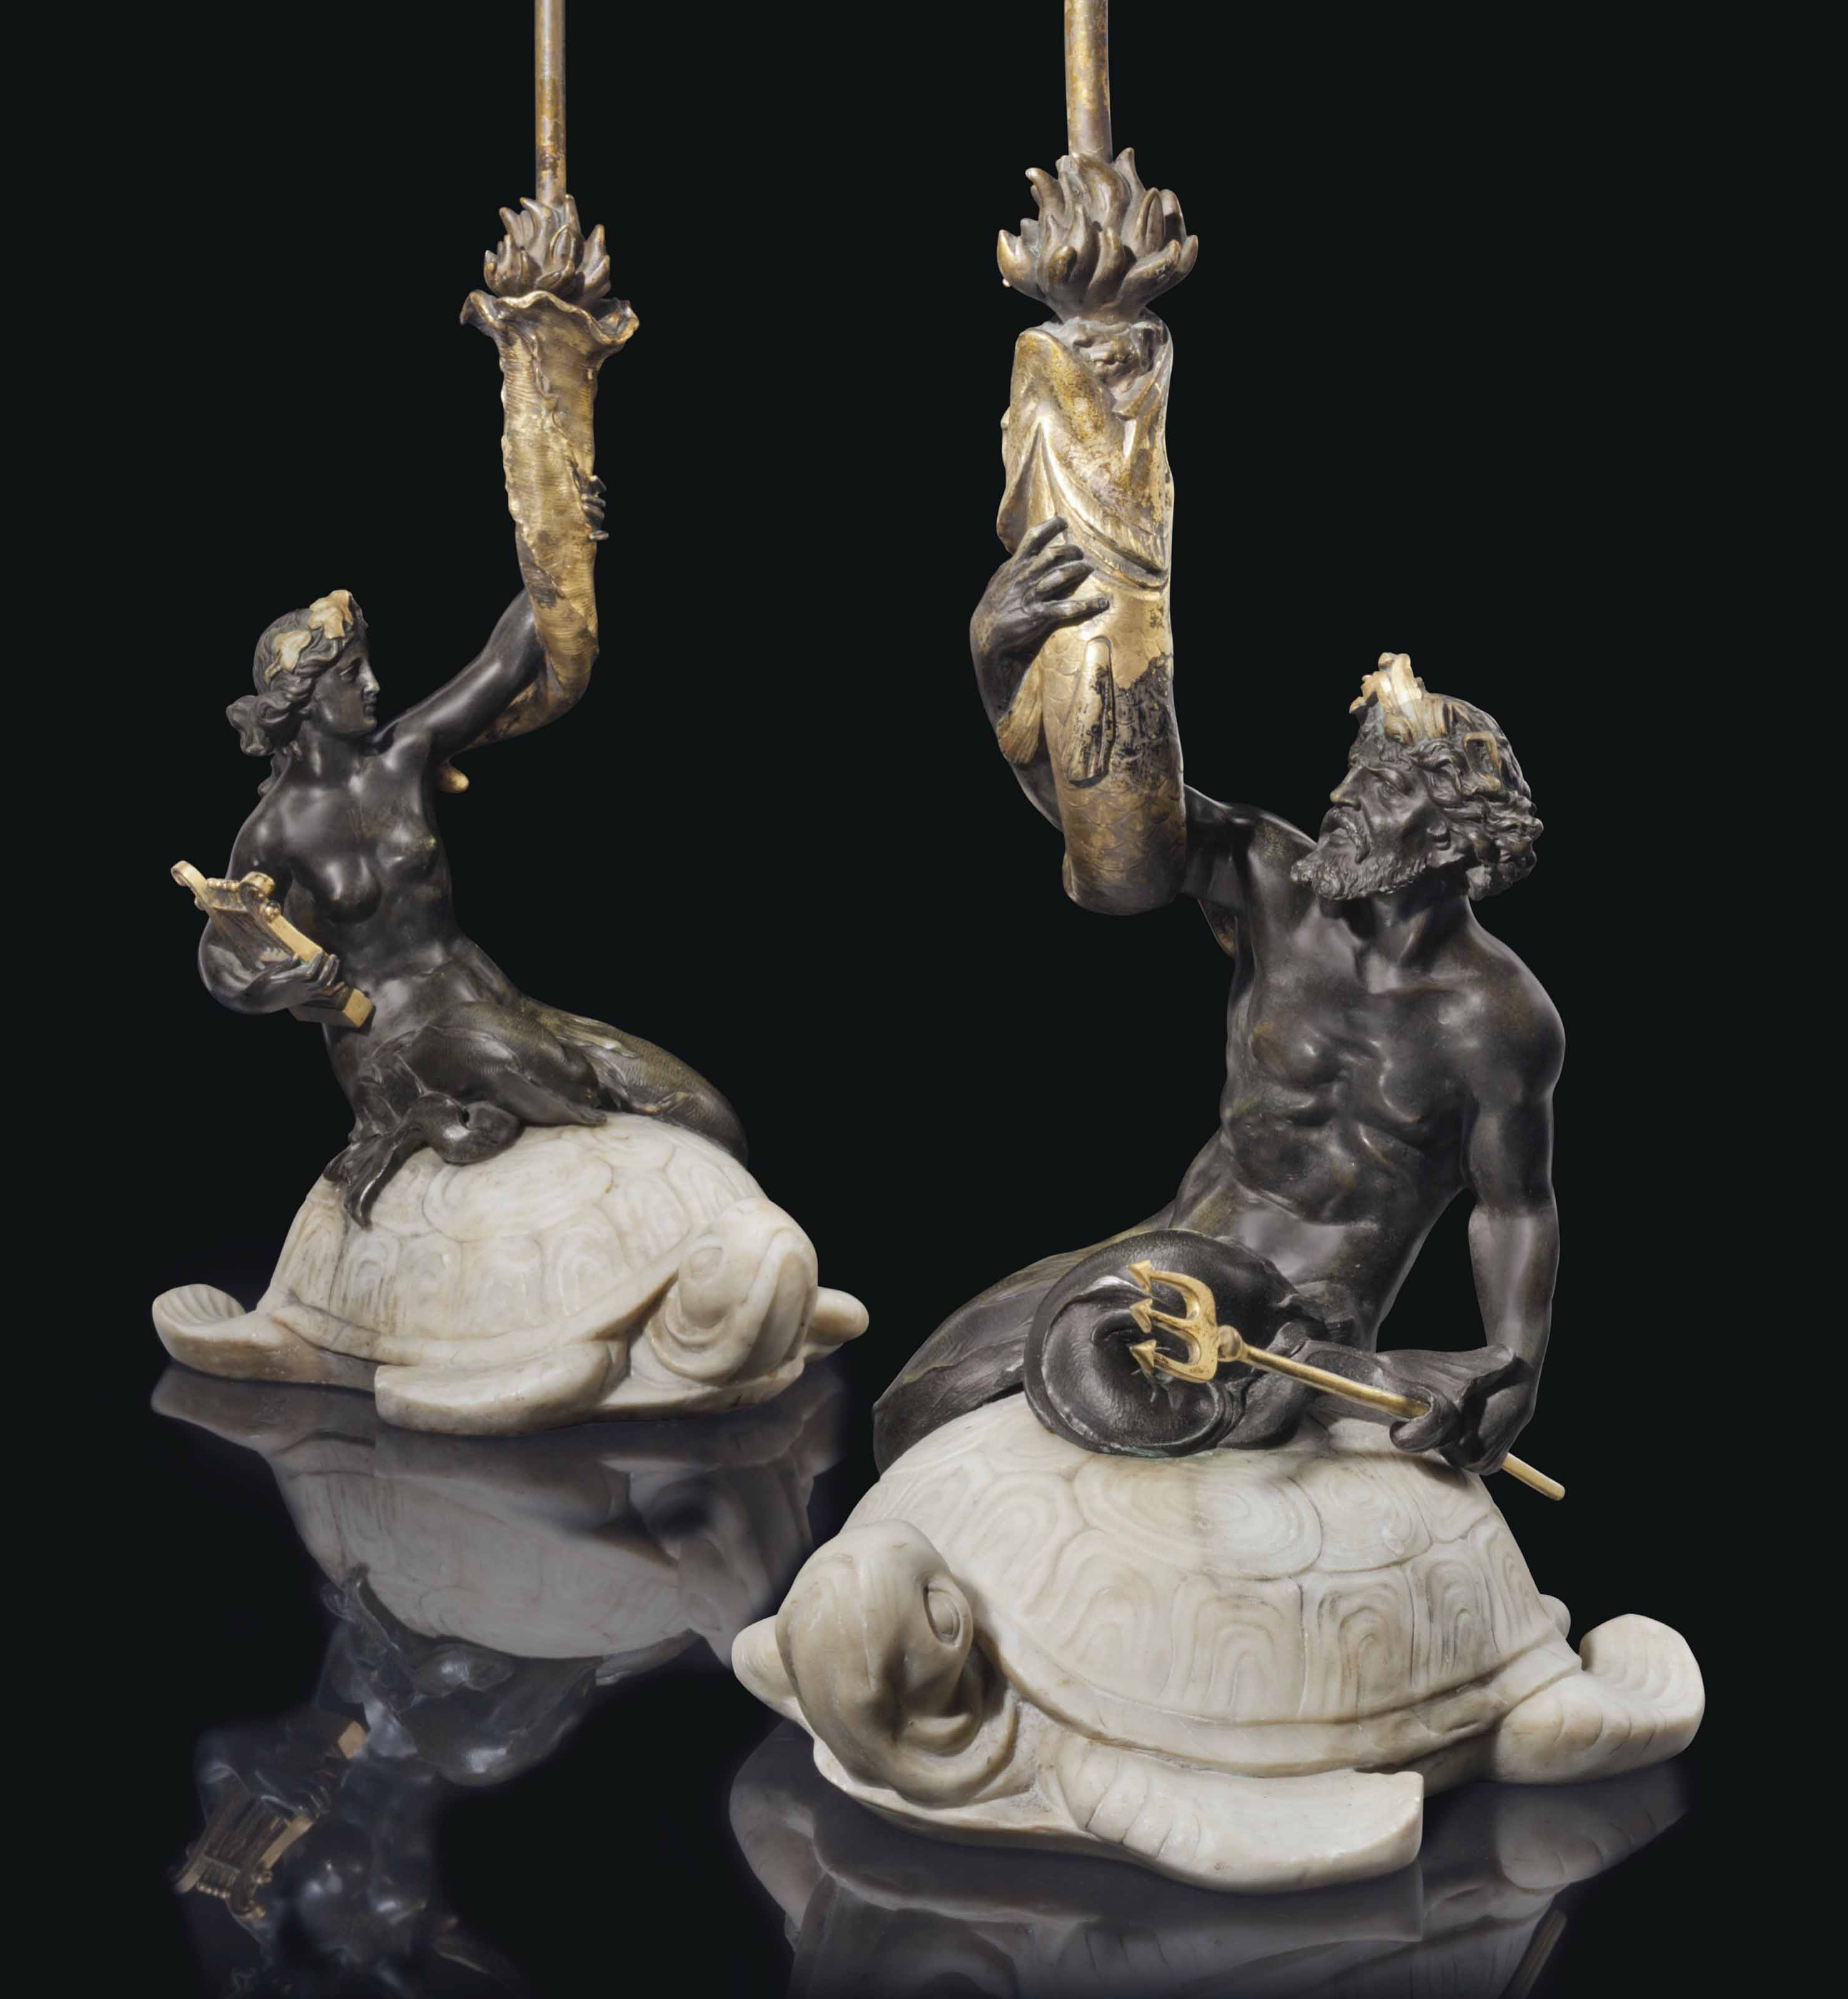 A PAIR OF AMERICAN ORMOLU, PATINATED-BRONZE AND WHITE MARBLE TABLE LAMPS